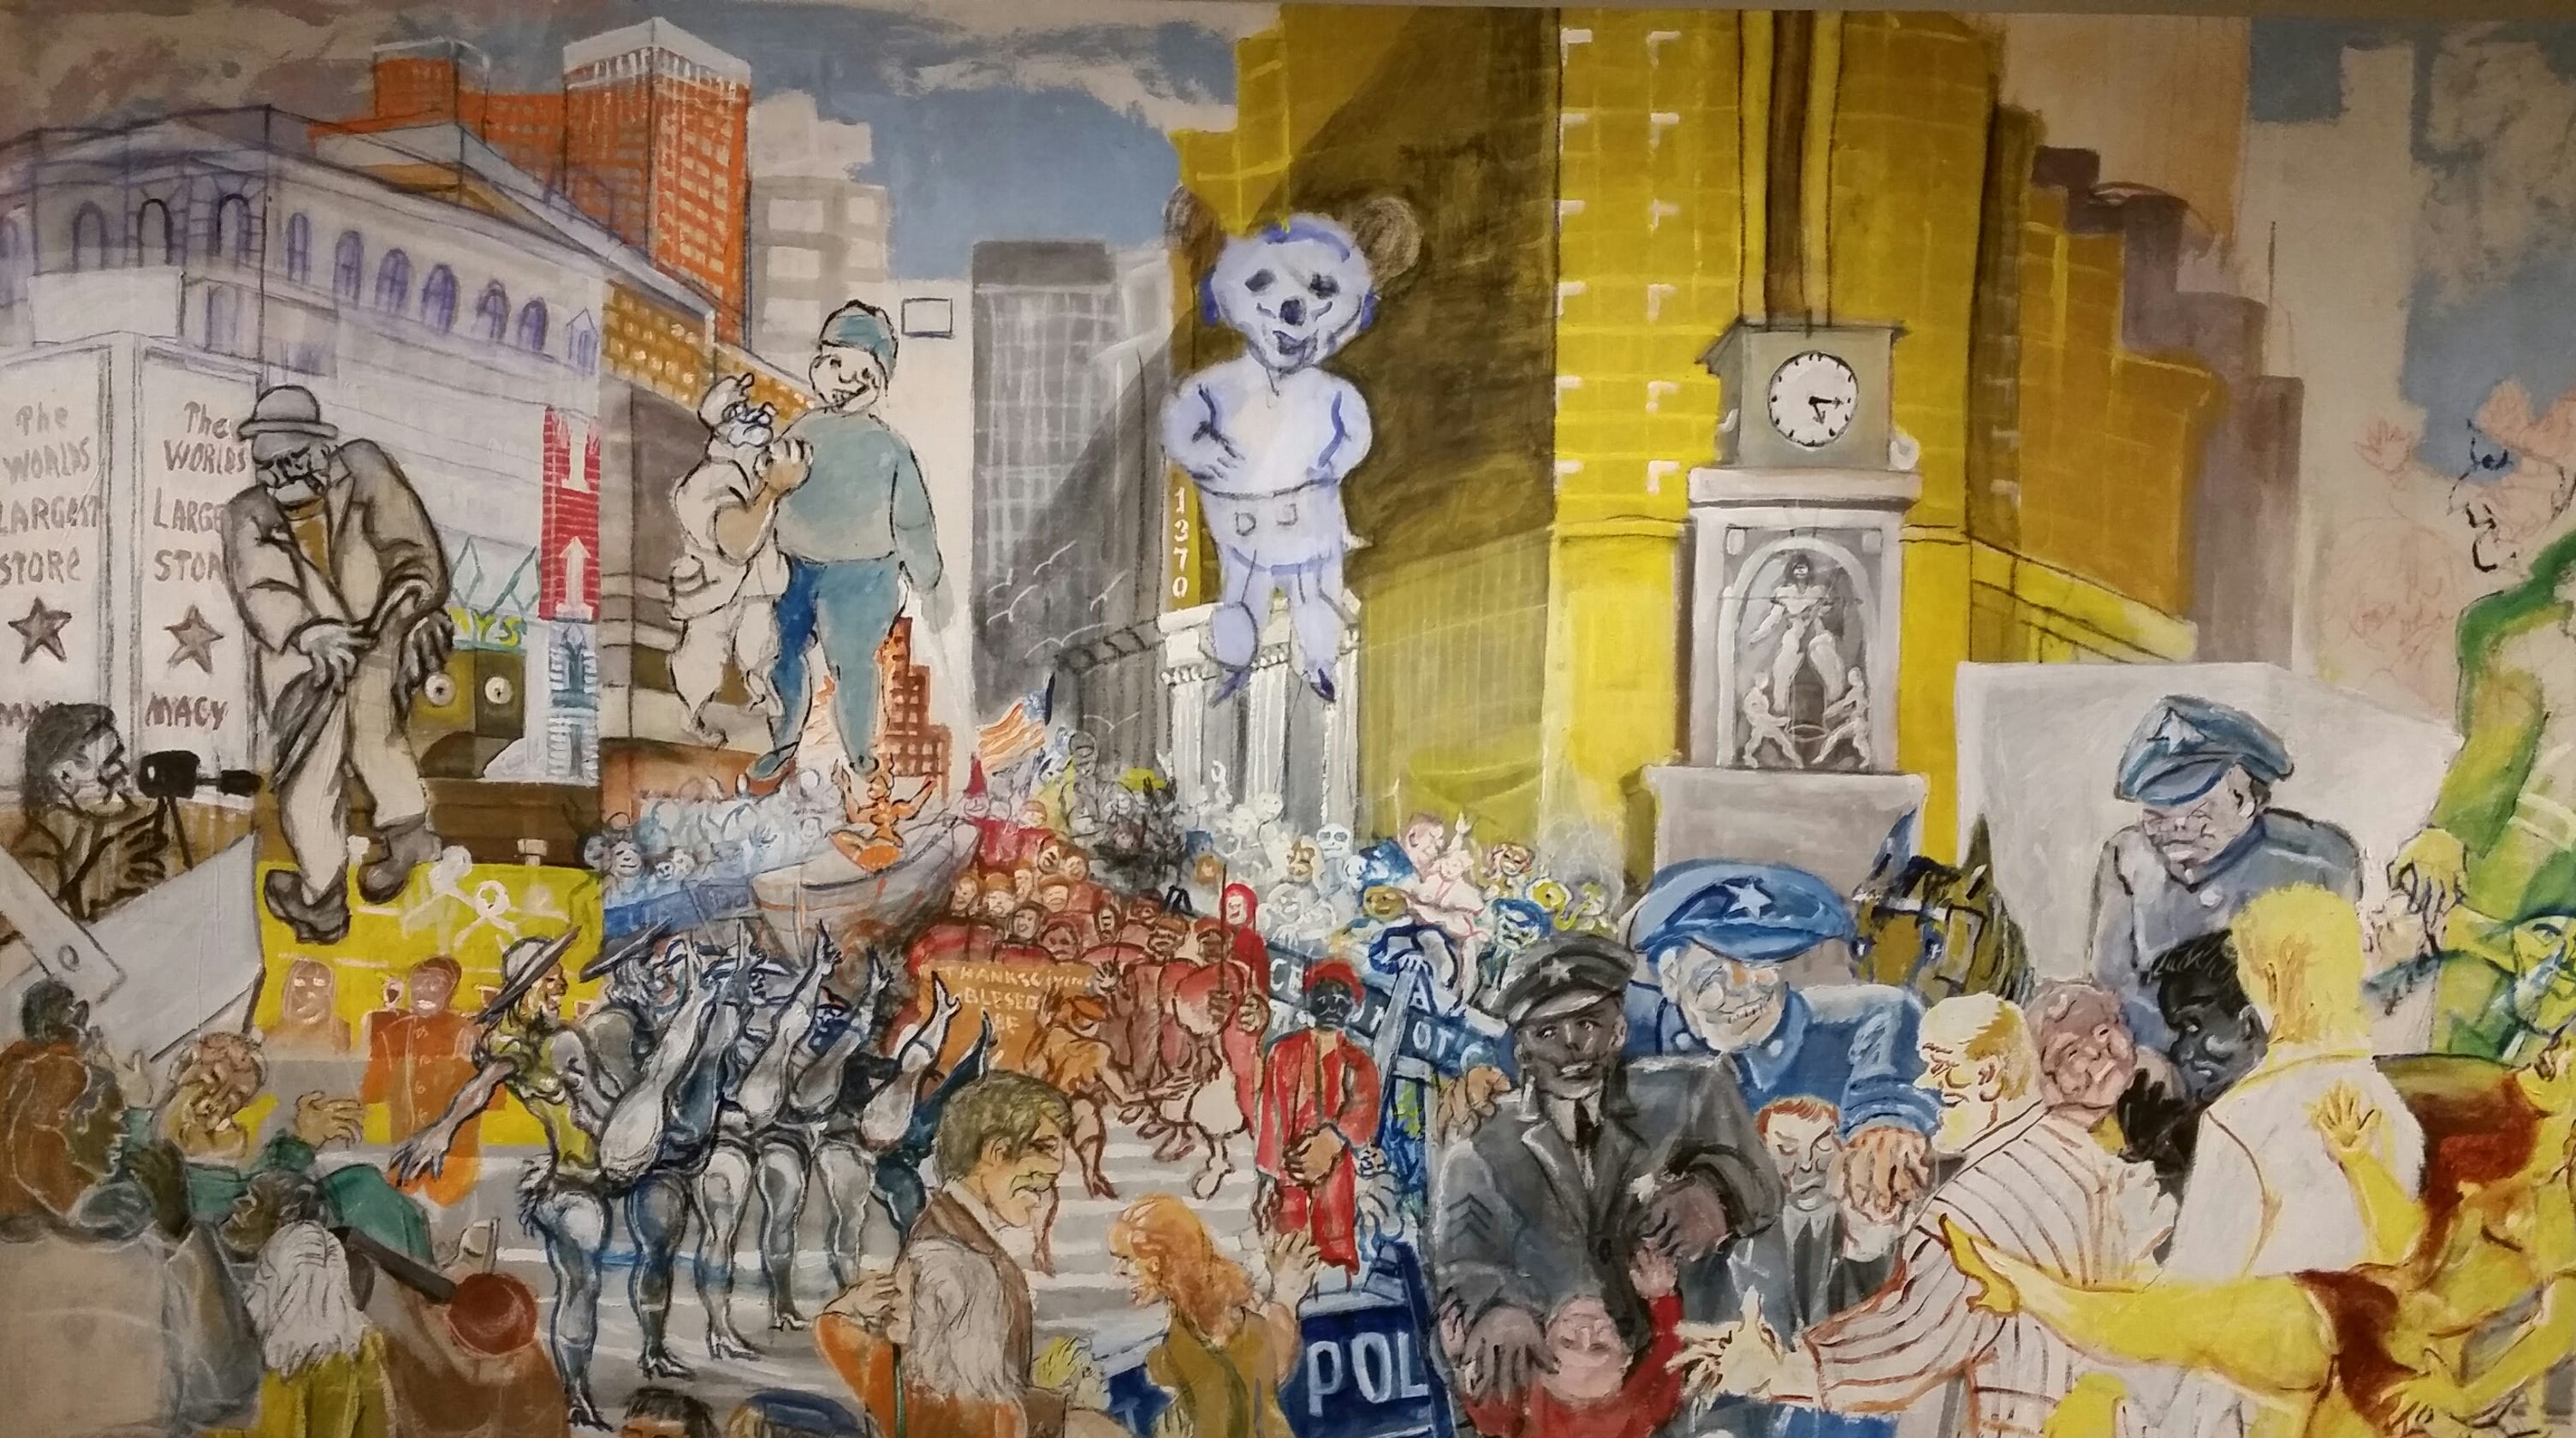 knoxville native african american artist joseph delaney has kma show